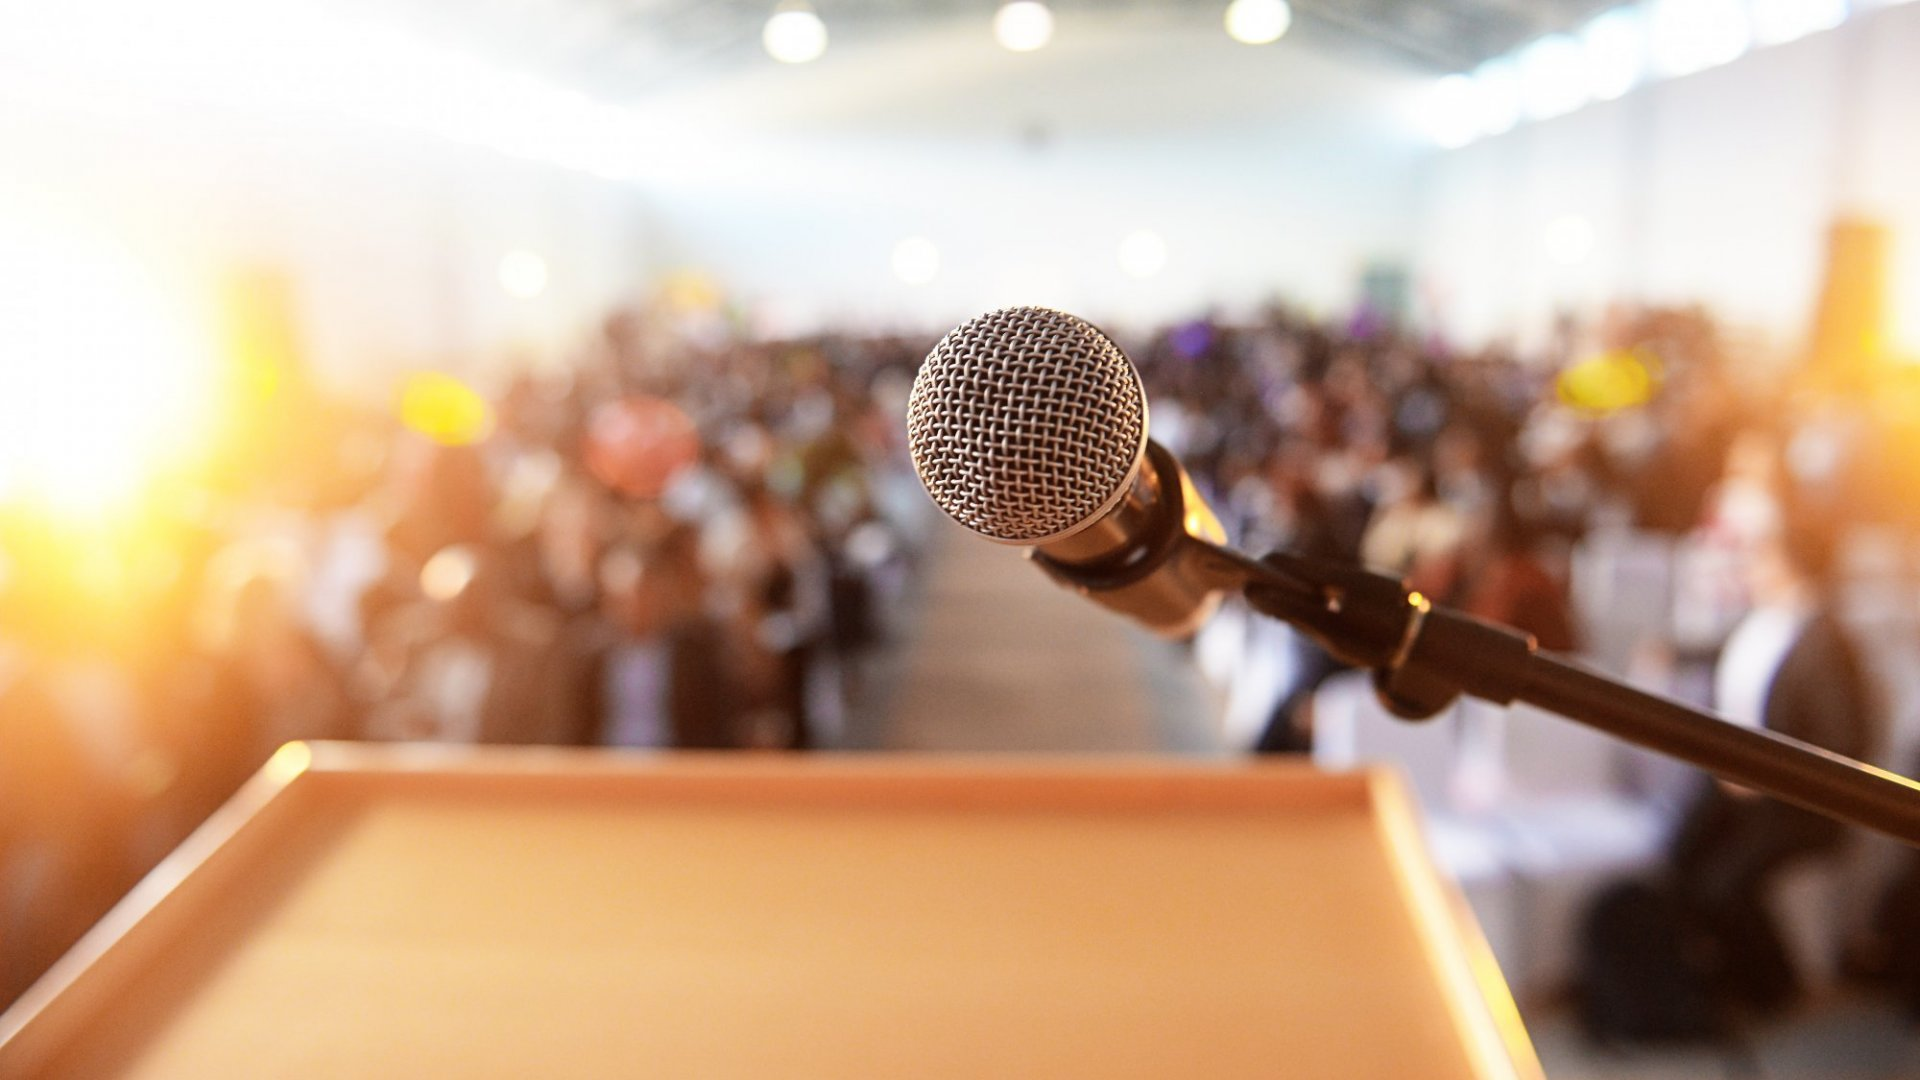 If Public Speaking Scares You, Keep These 6 Things in Mind